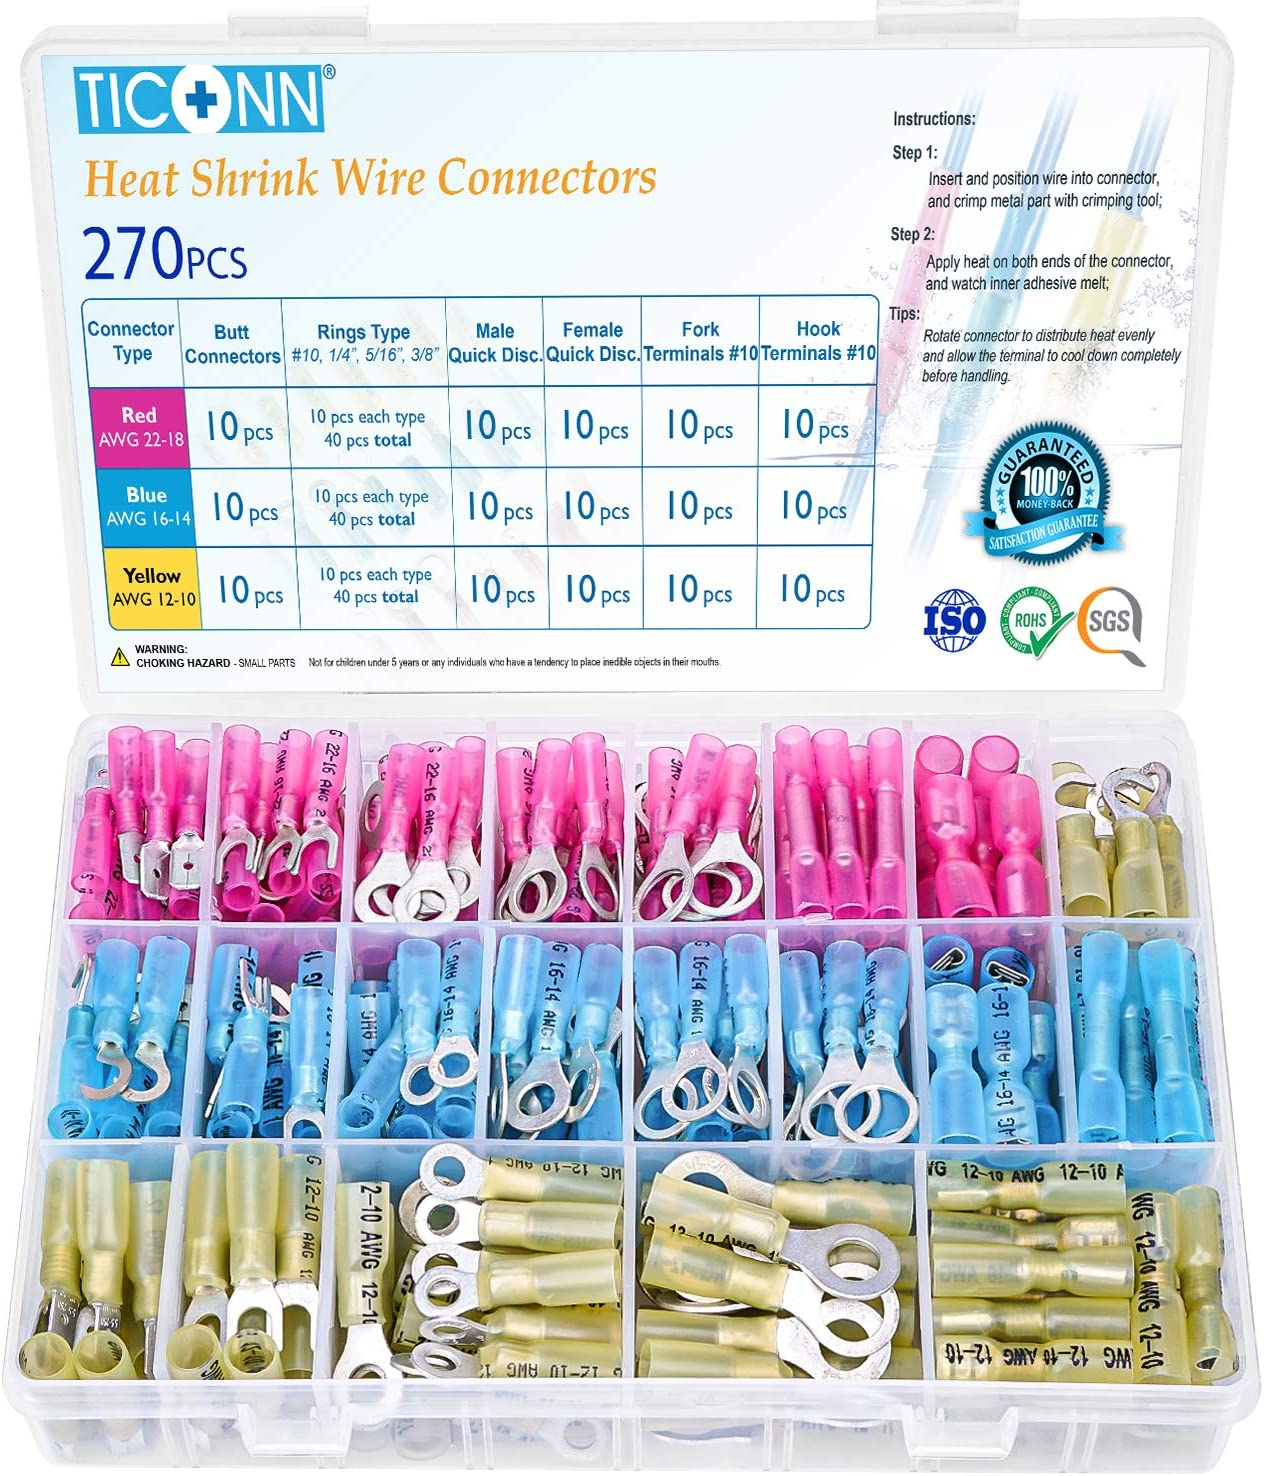 TICONN 270 Pcs Heat Shrink Wire Connectors, Waterproof Automotive Marine Electrical Terminals Kit, Crimp Connector Assortment, Ring Fork Hook Spade Butt Splices